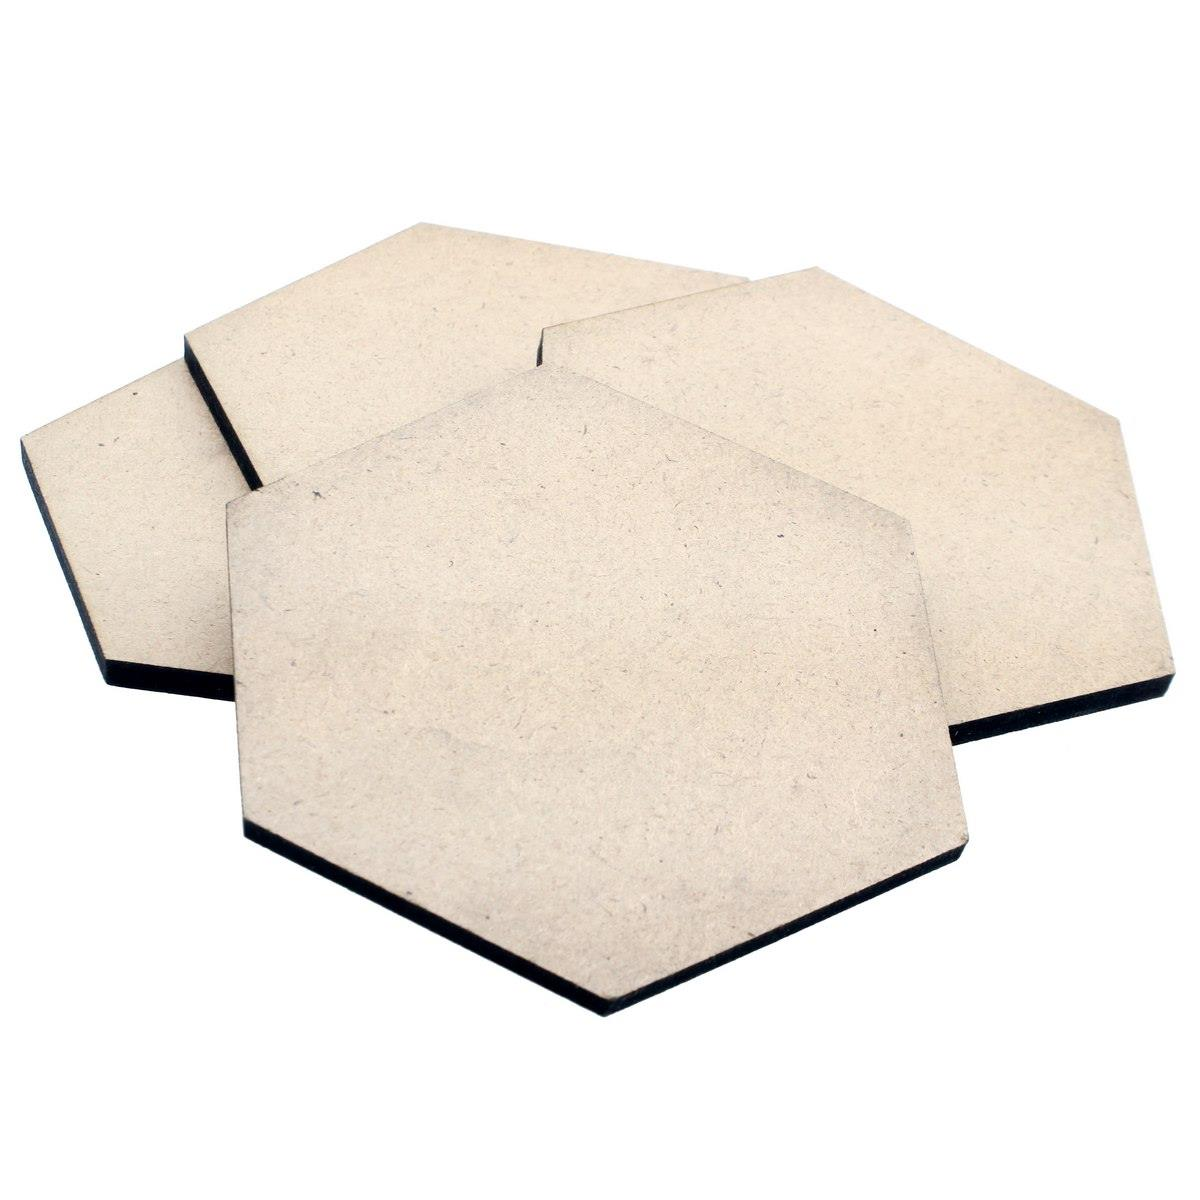 MDF Wooden Plate Octagon Shape (Pack of 4) (4x4 Inch) (4MM Thick)